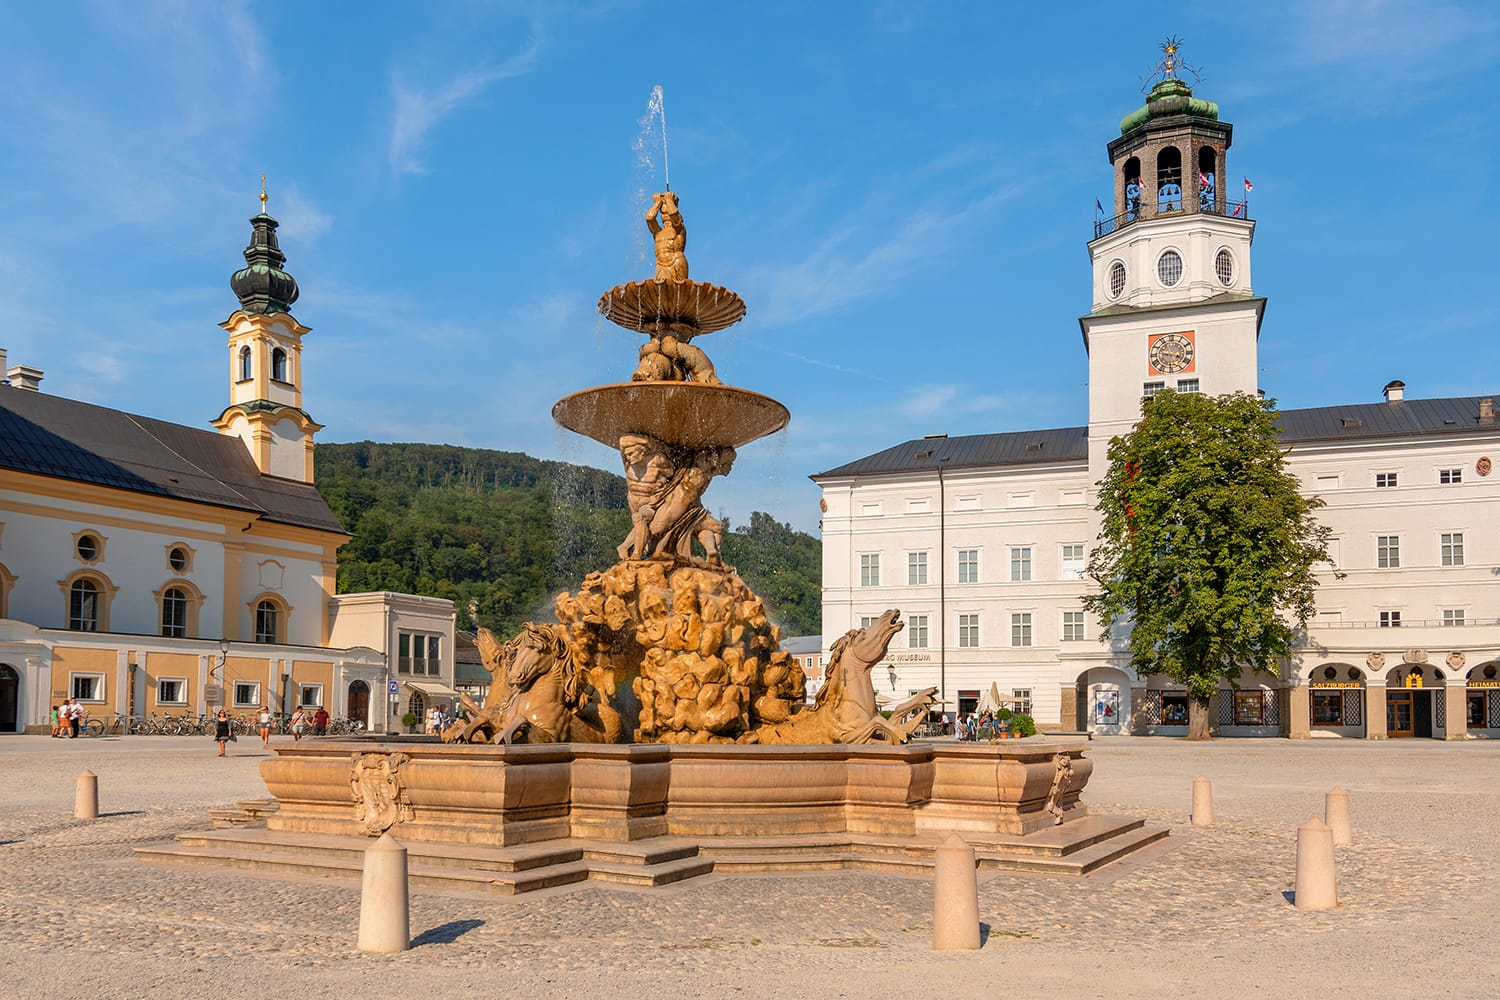 The fountain of Residence square in the old town of Salzburg Austria